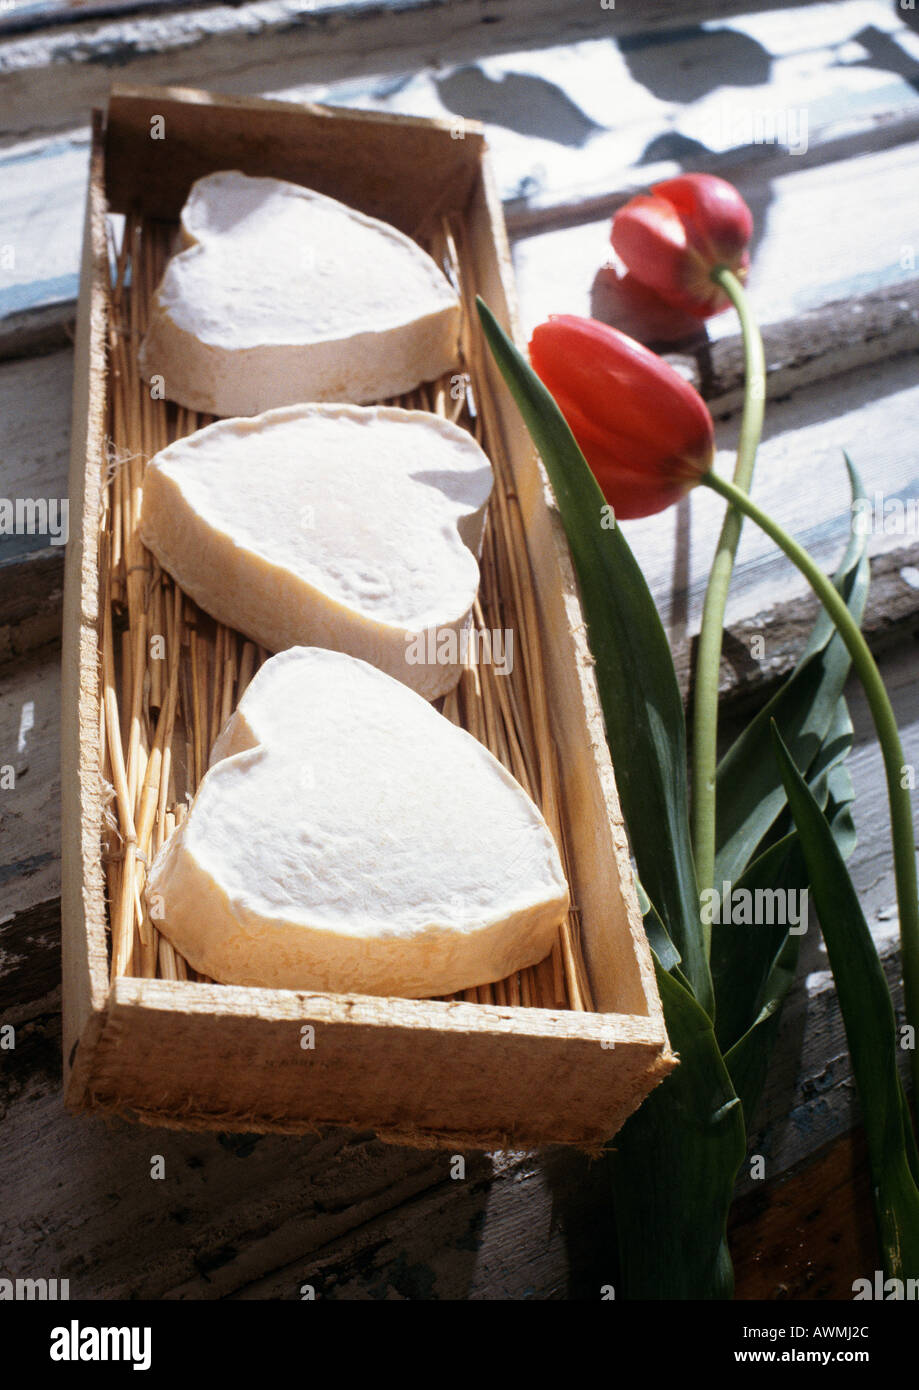 Three neufchatel cheeses in form of hearts, in wooden box with tulips - Stock Image